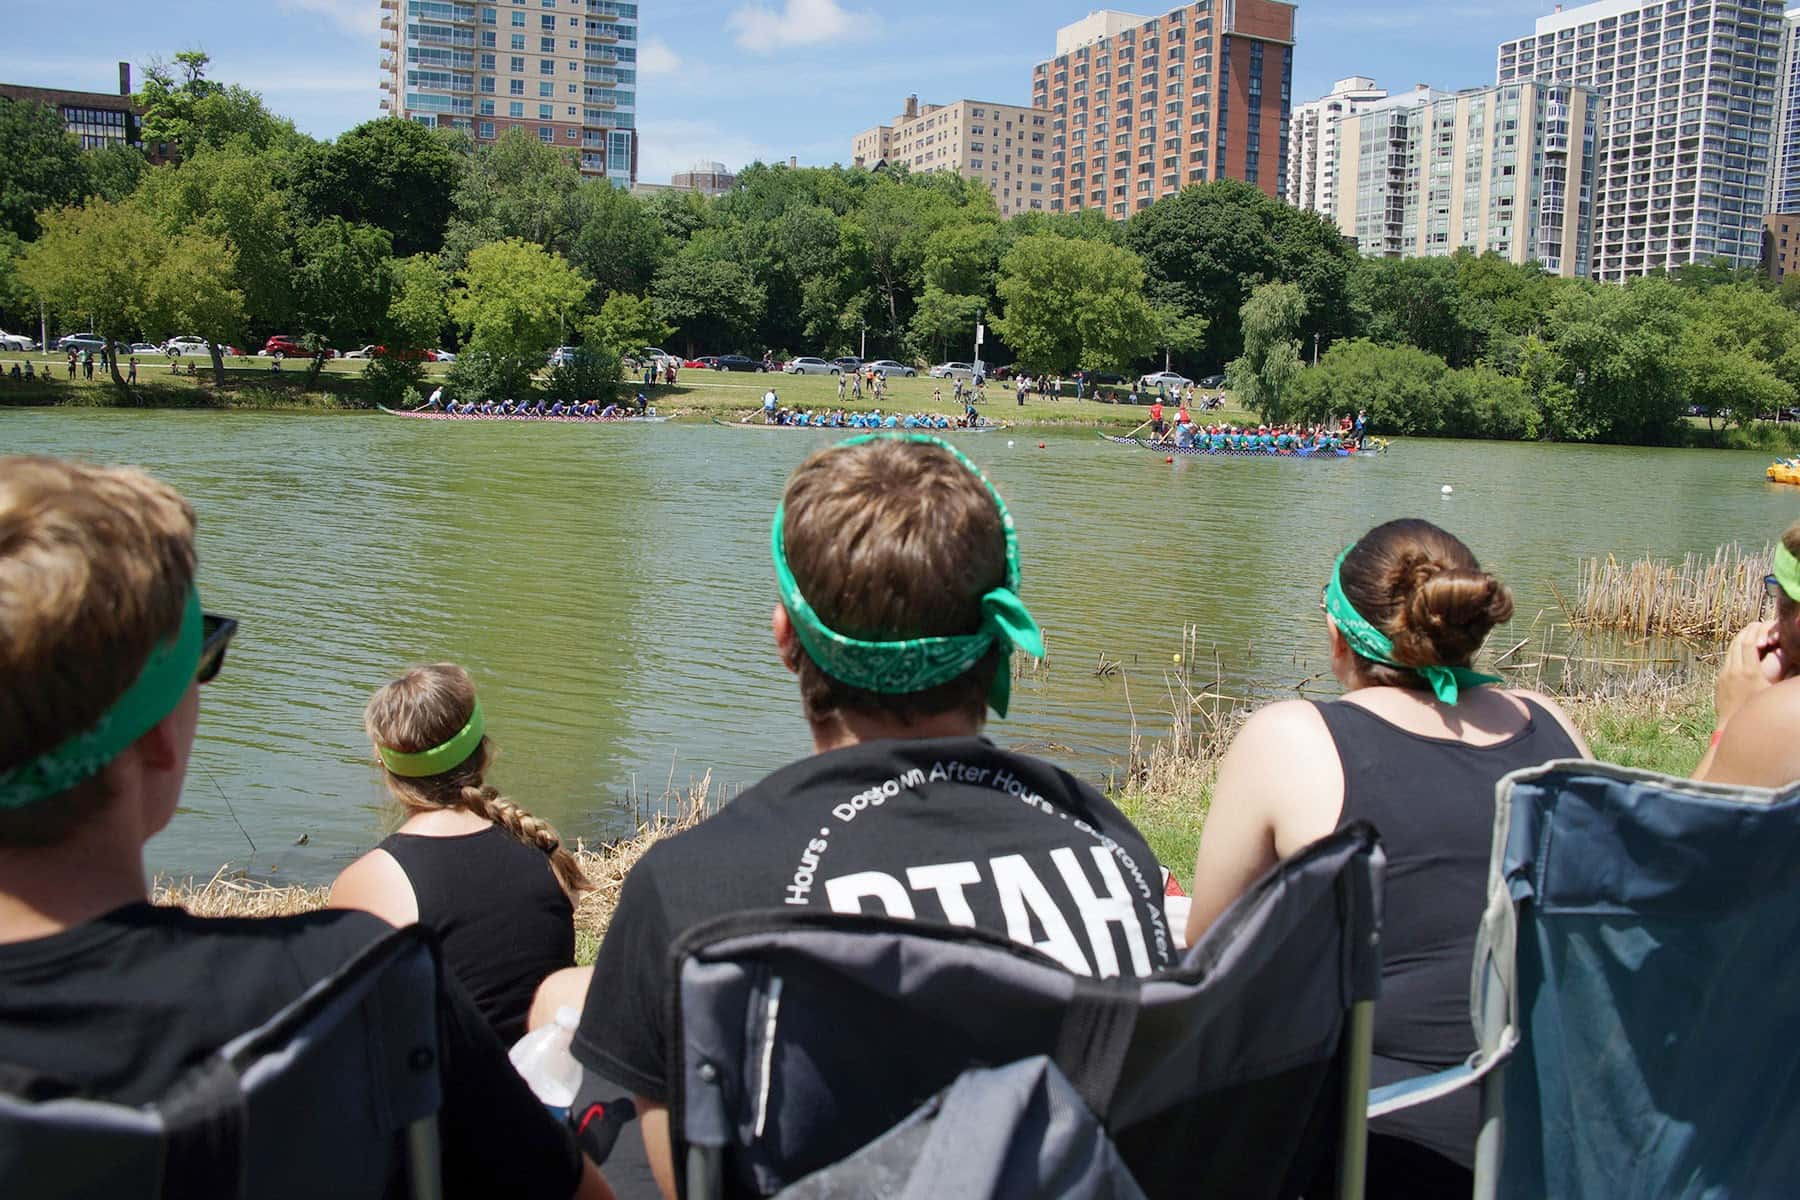 080116_dragonboat_album_03_09